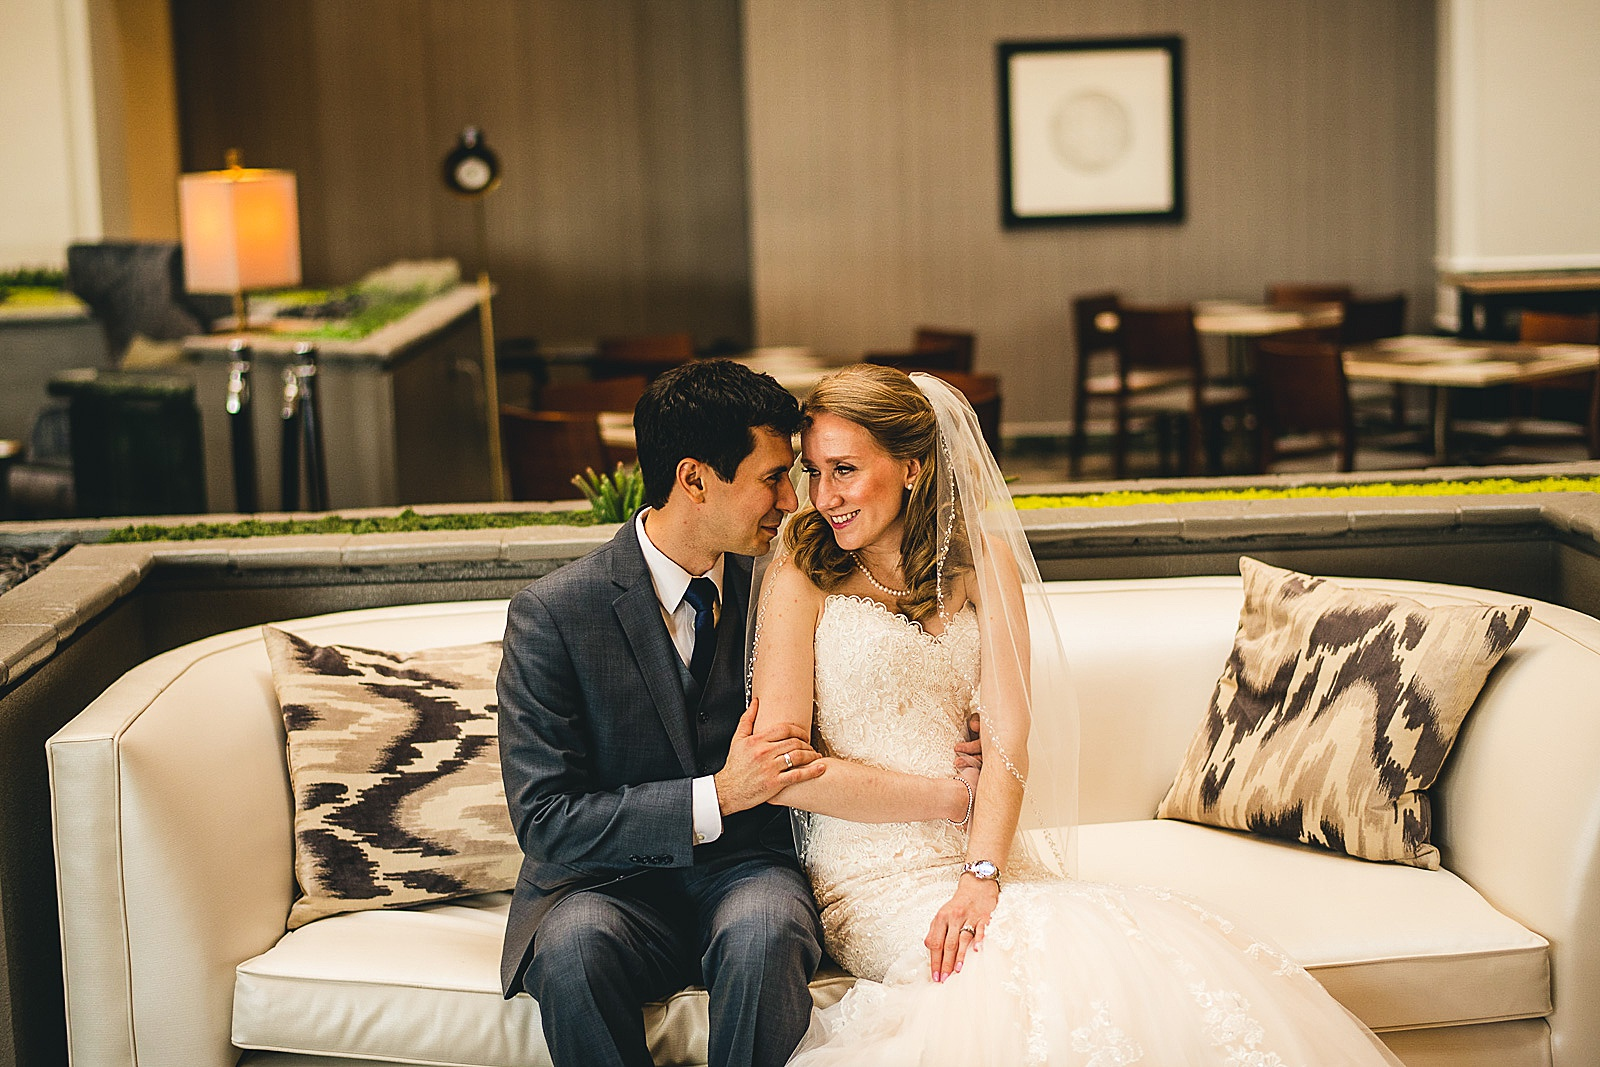 09 wedding photography at drury lane - Oakbrook Wedding Photos at Drury Lane // Marina + Joe